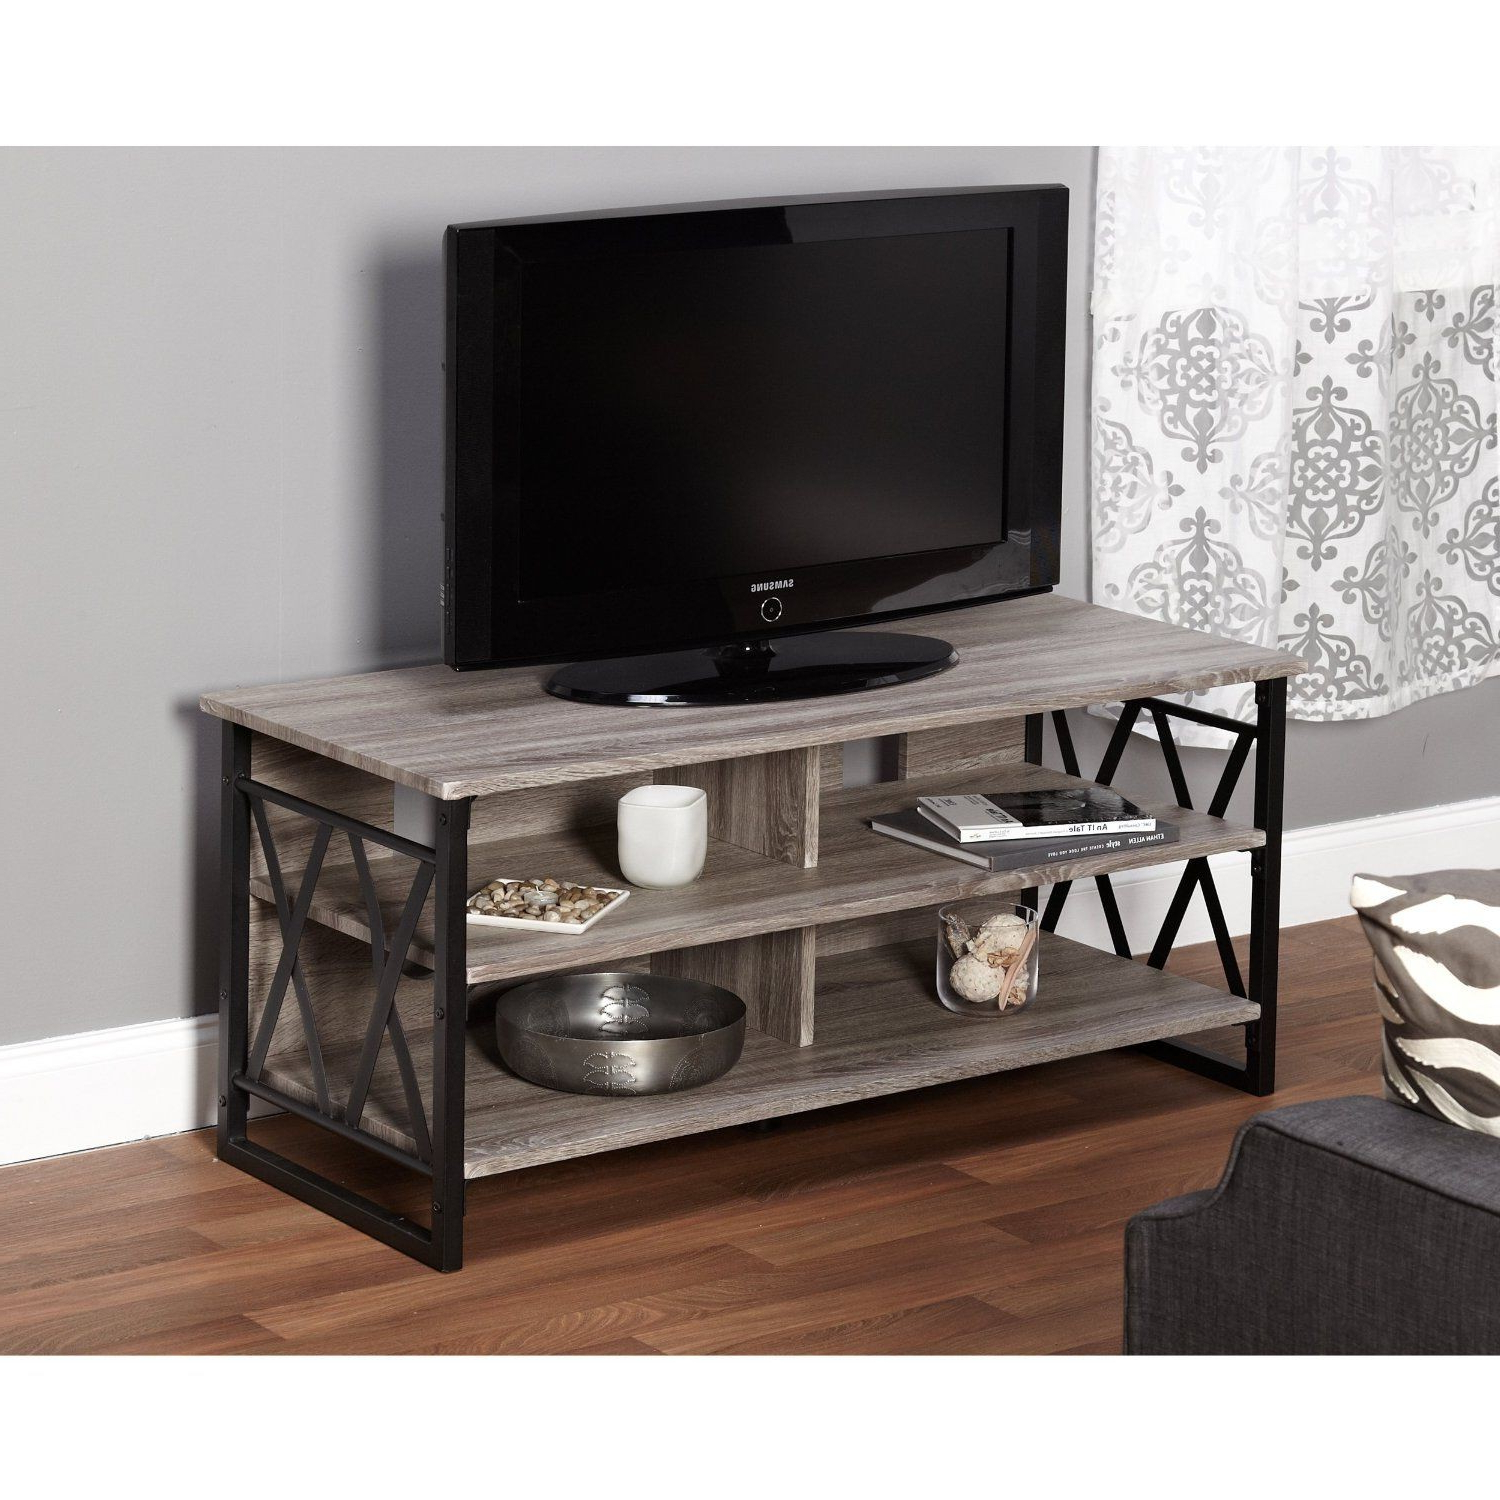 Metal Tv Stand (View 16 of 18)